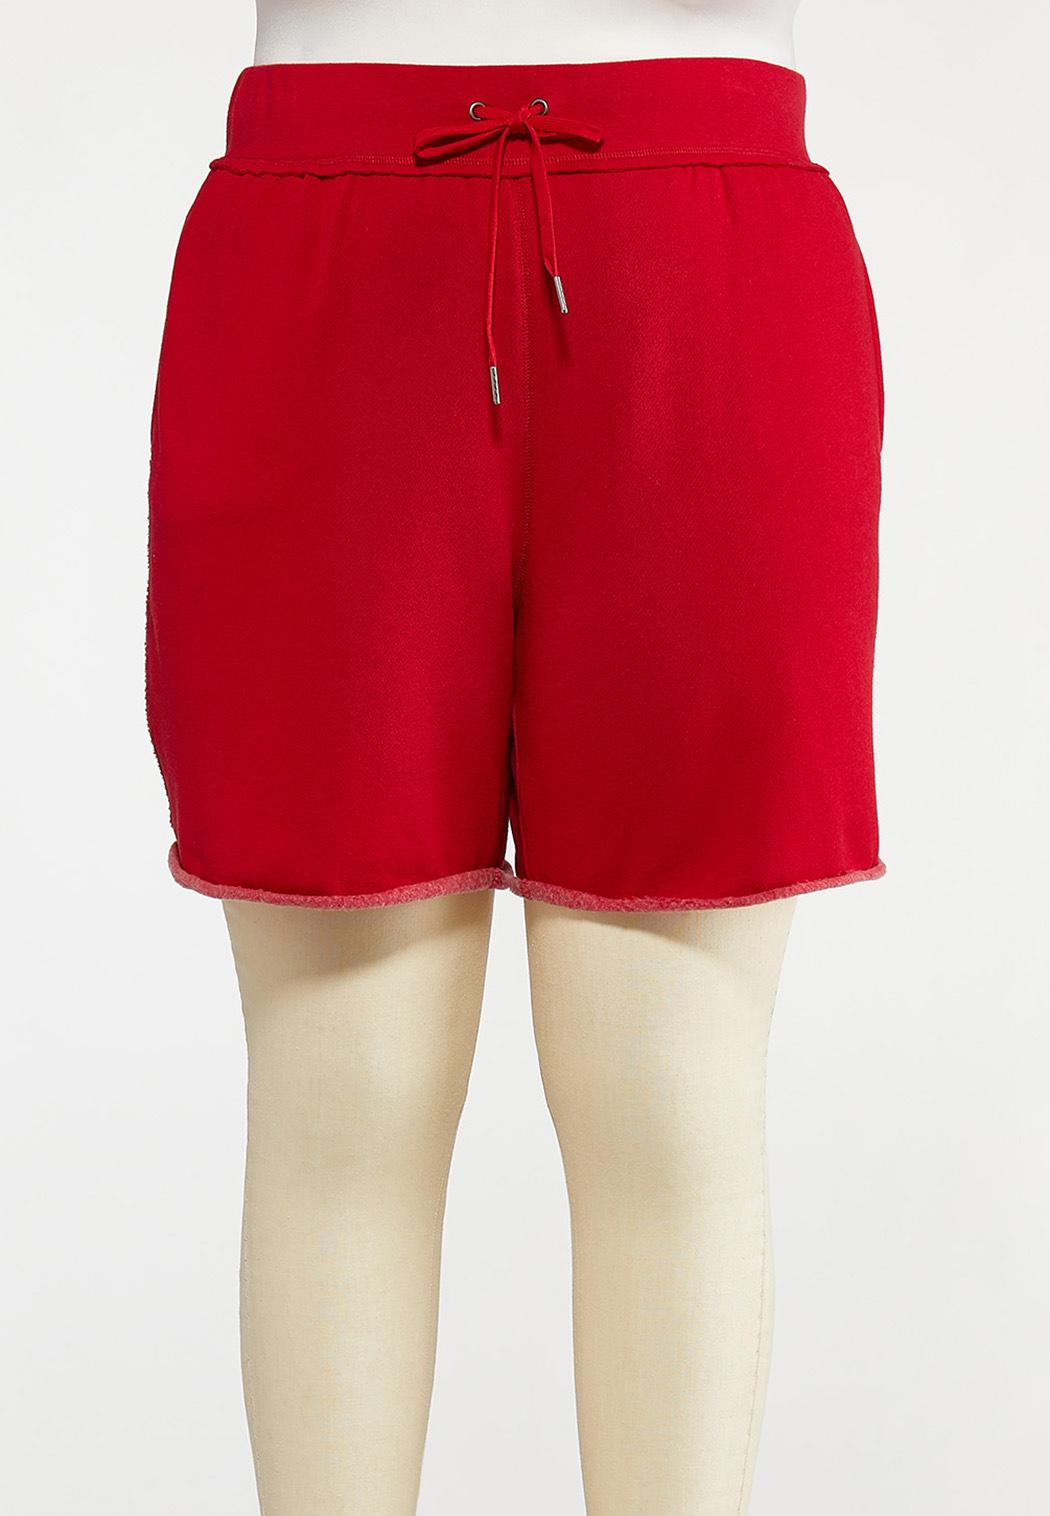 Plus Size Red Fleece Lined Shorts